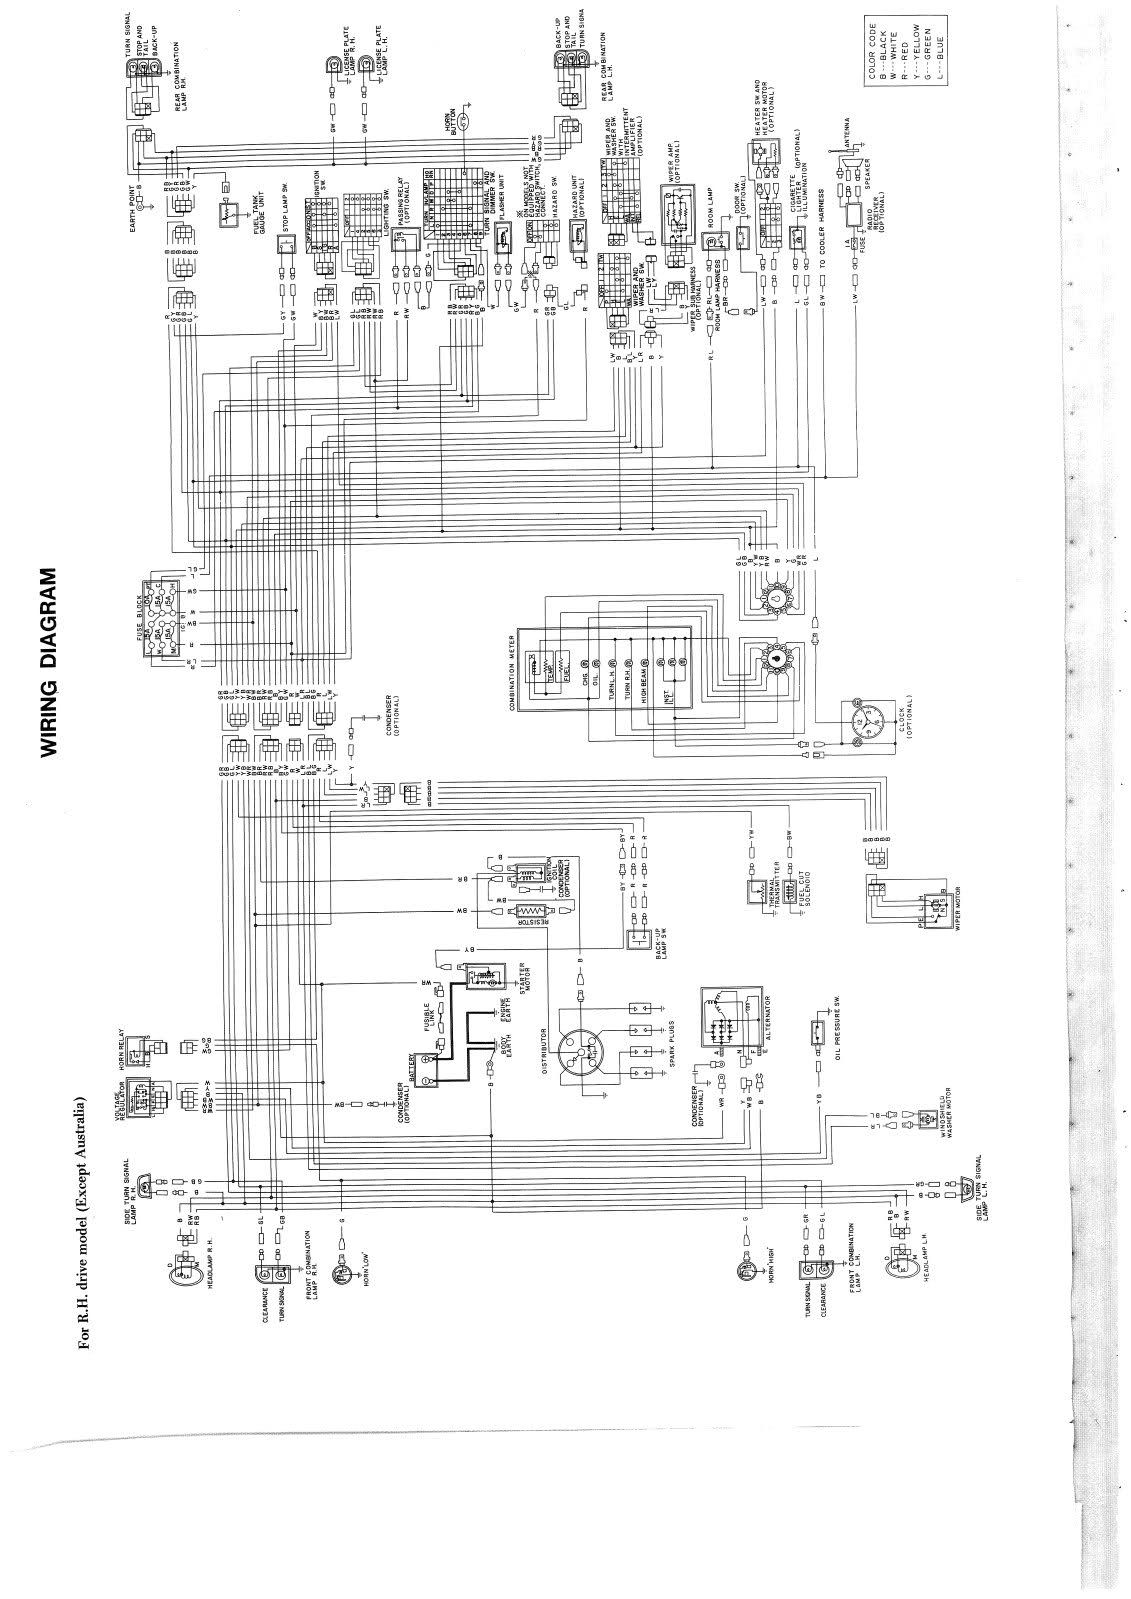 WRG-3813] Nissan 1400 Wiring Diagram Free Download on